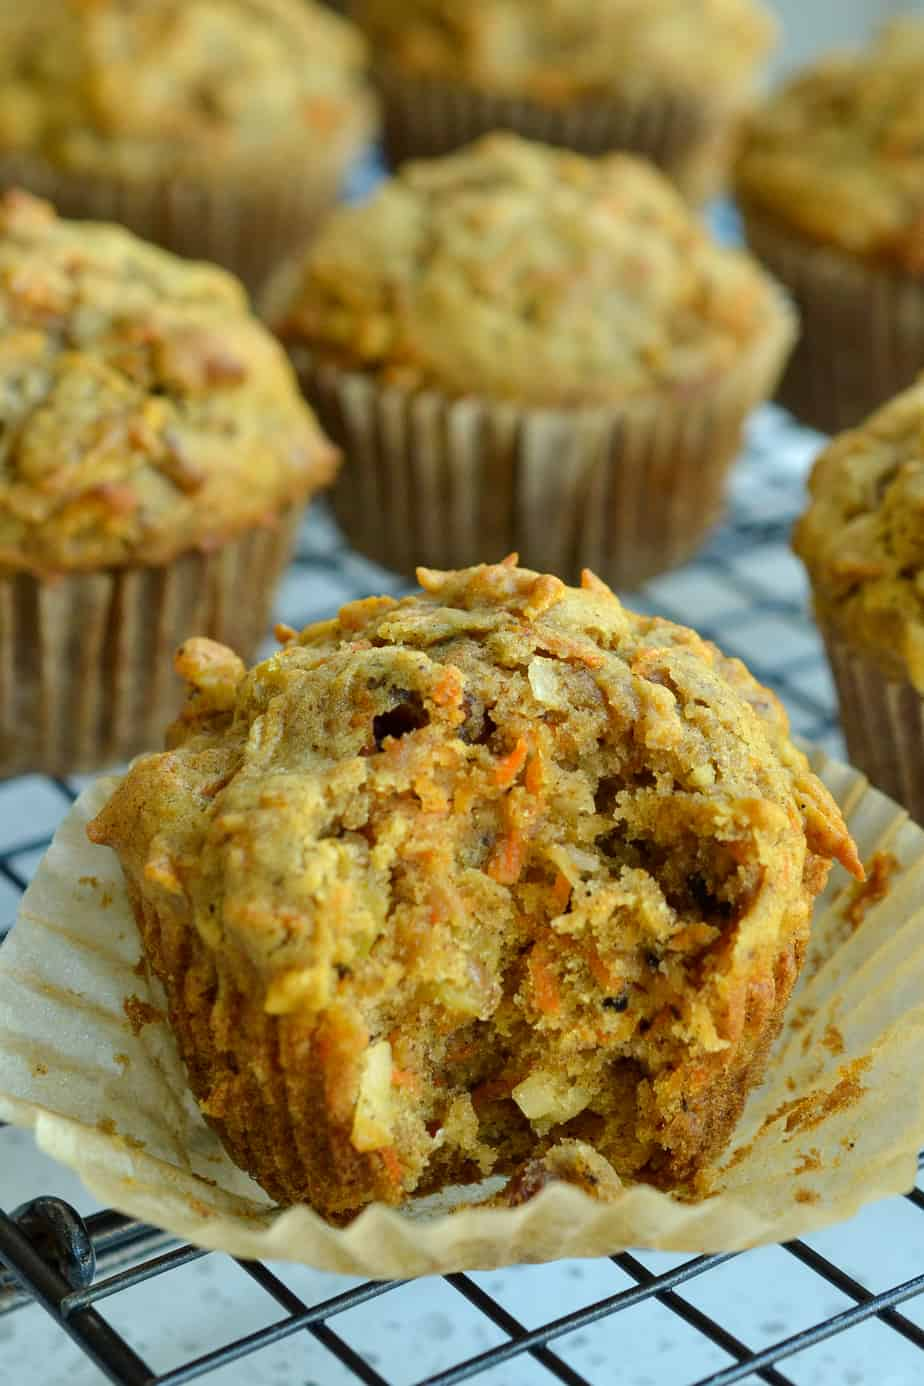 Fresh baked muffins filled with carrots, raisins, coconuts, and apples.